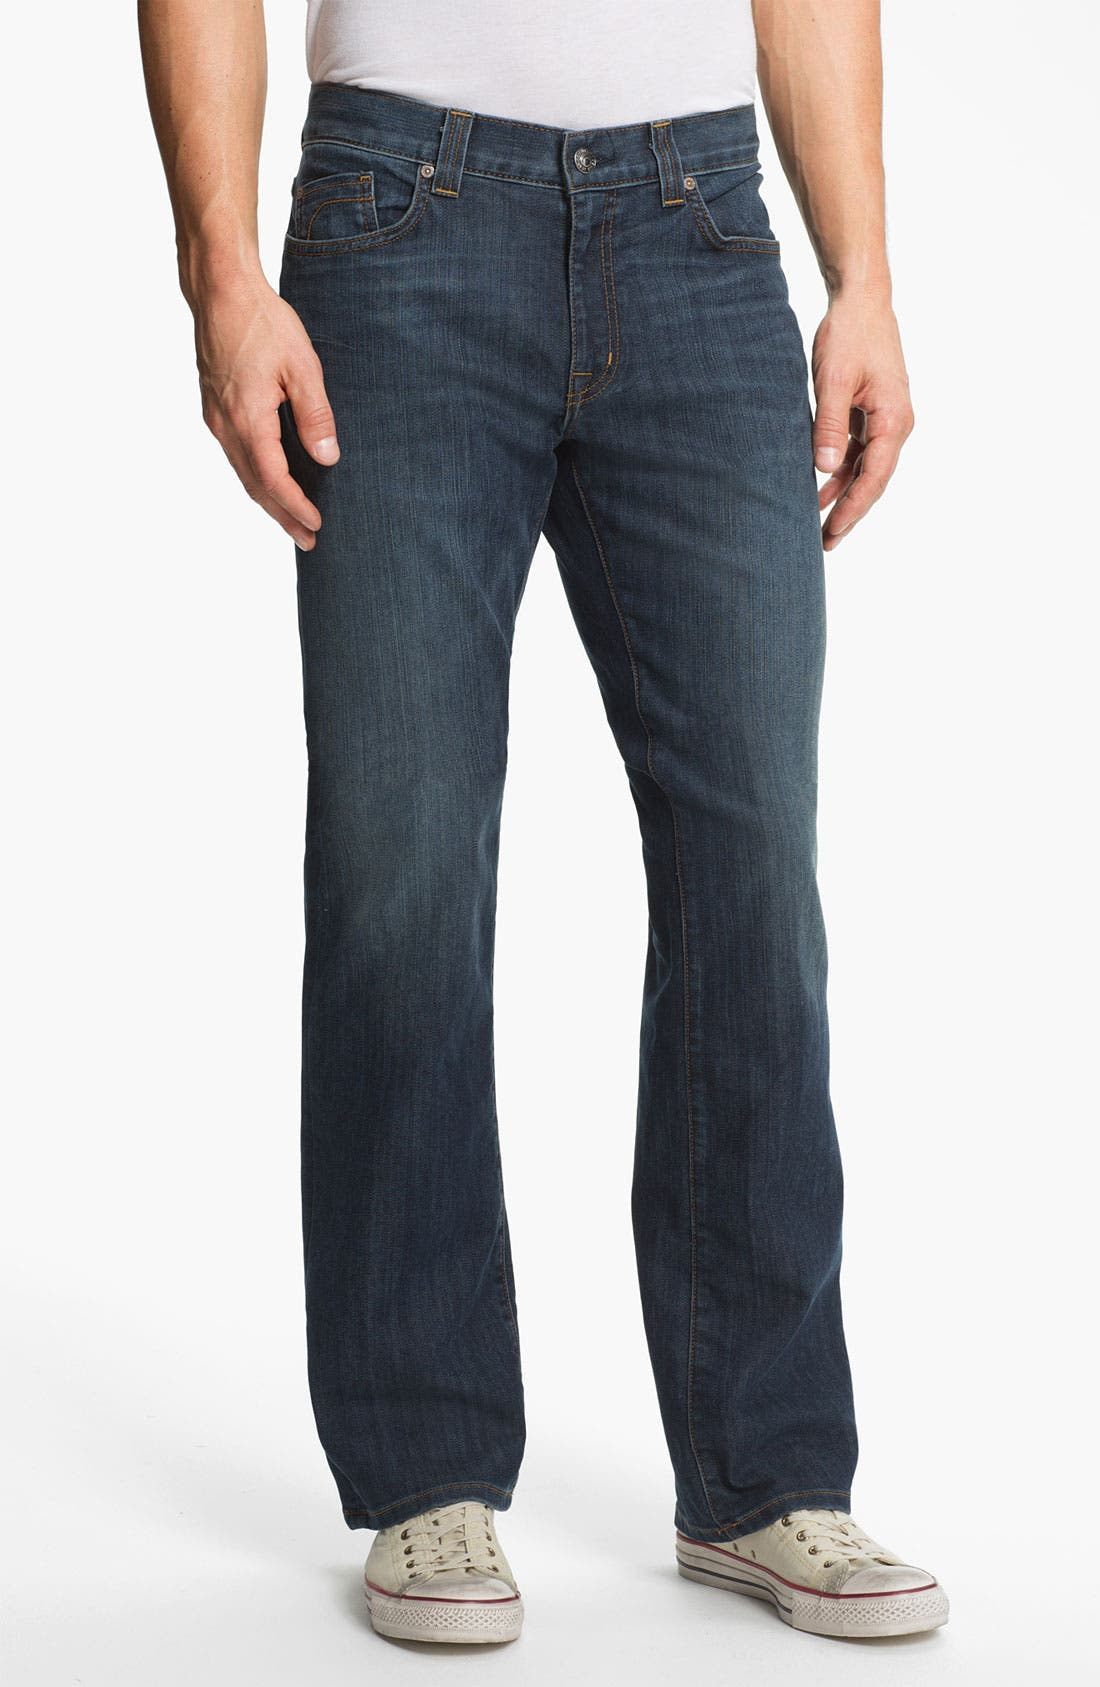 Alternate Image 1 Selected - Fidelity Denim '5011' Straight Leg Jeans (Trigger Medium)